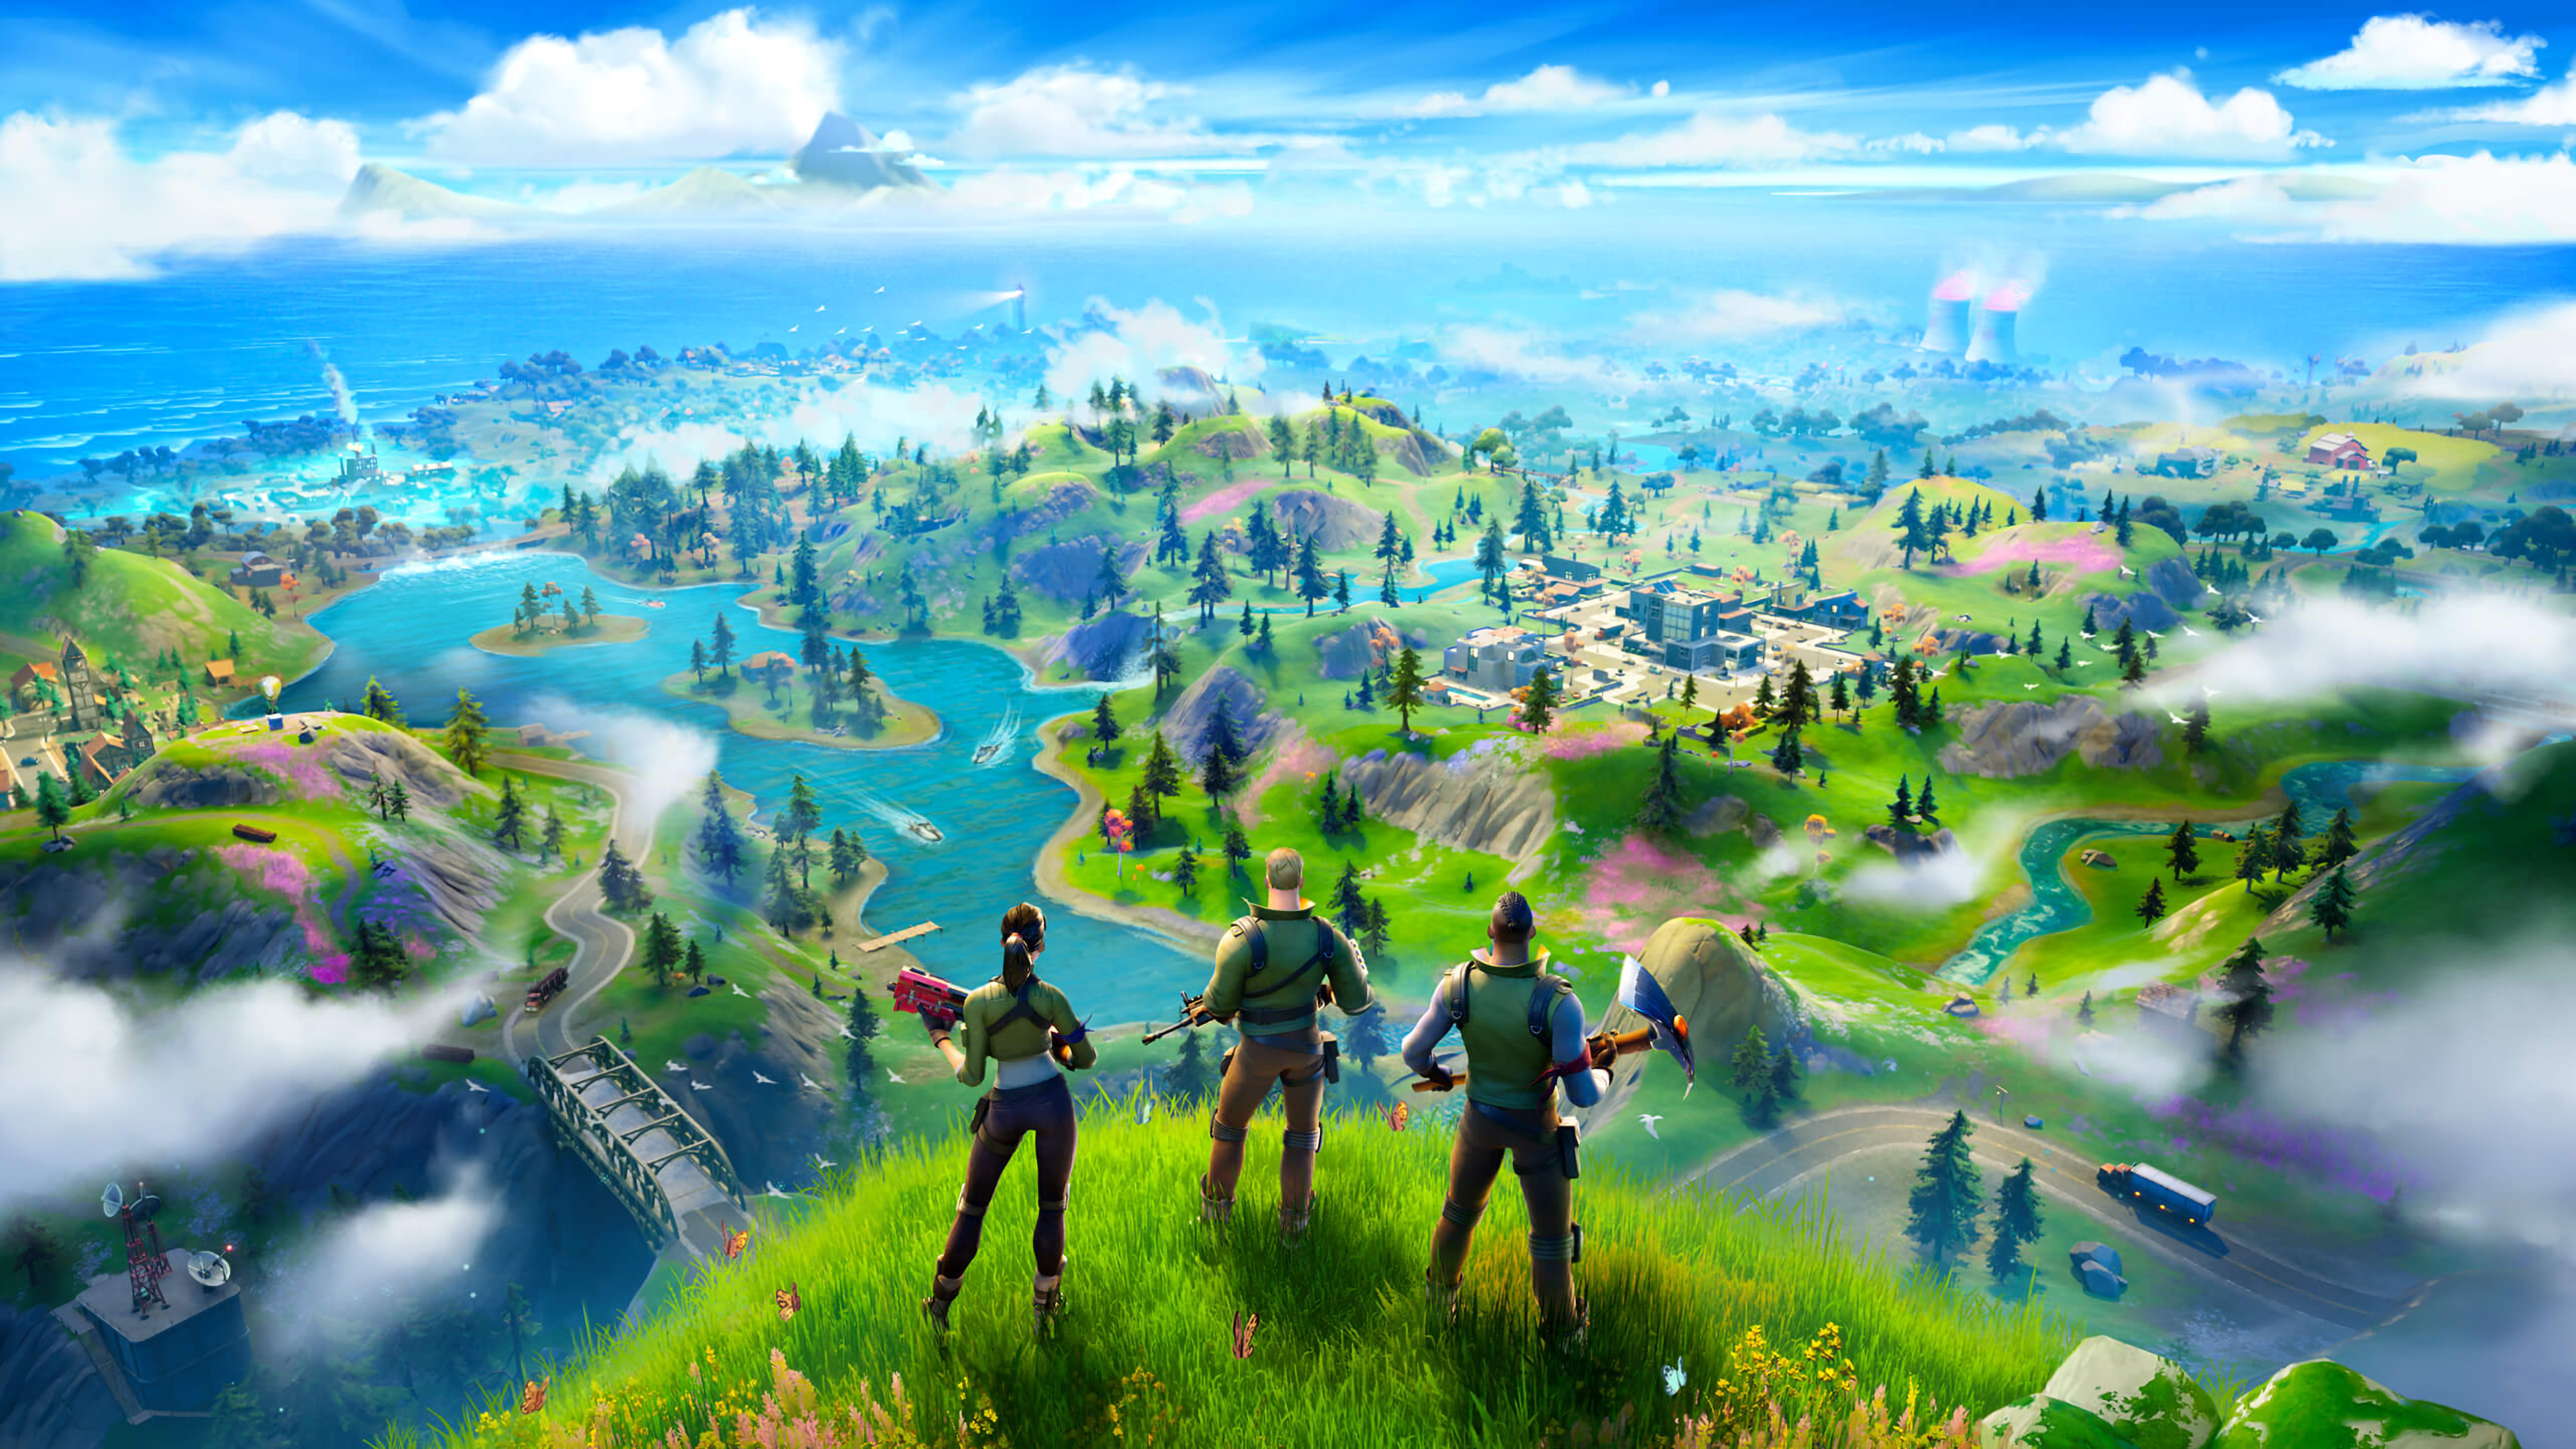 1125x2436 Fortnite Chapter 2 Iphone Xs Iphone 10 Iphone X Wallpaper Hd Games 4k Wallpapers Images Photos And Background